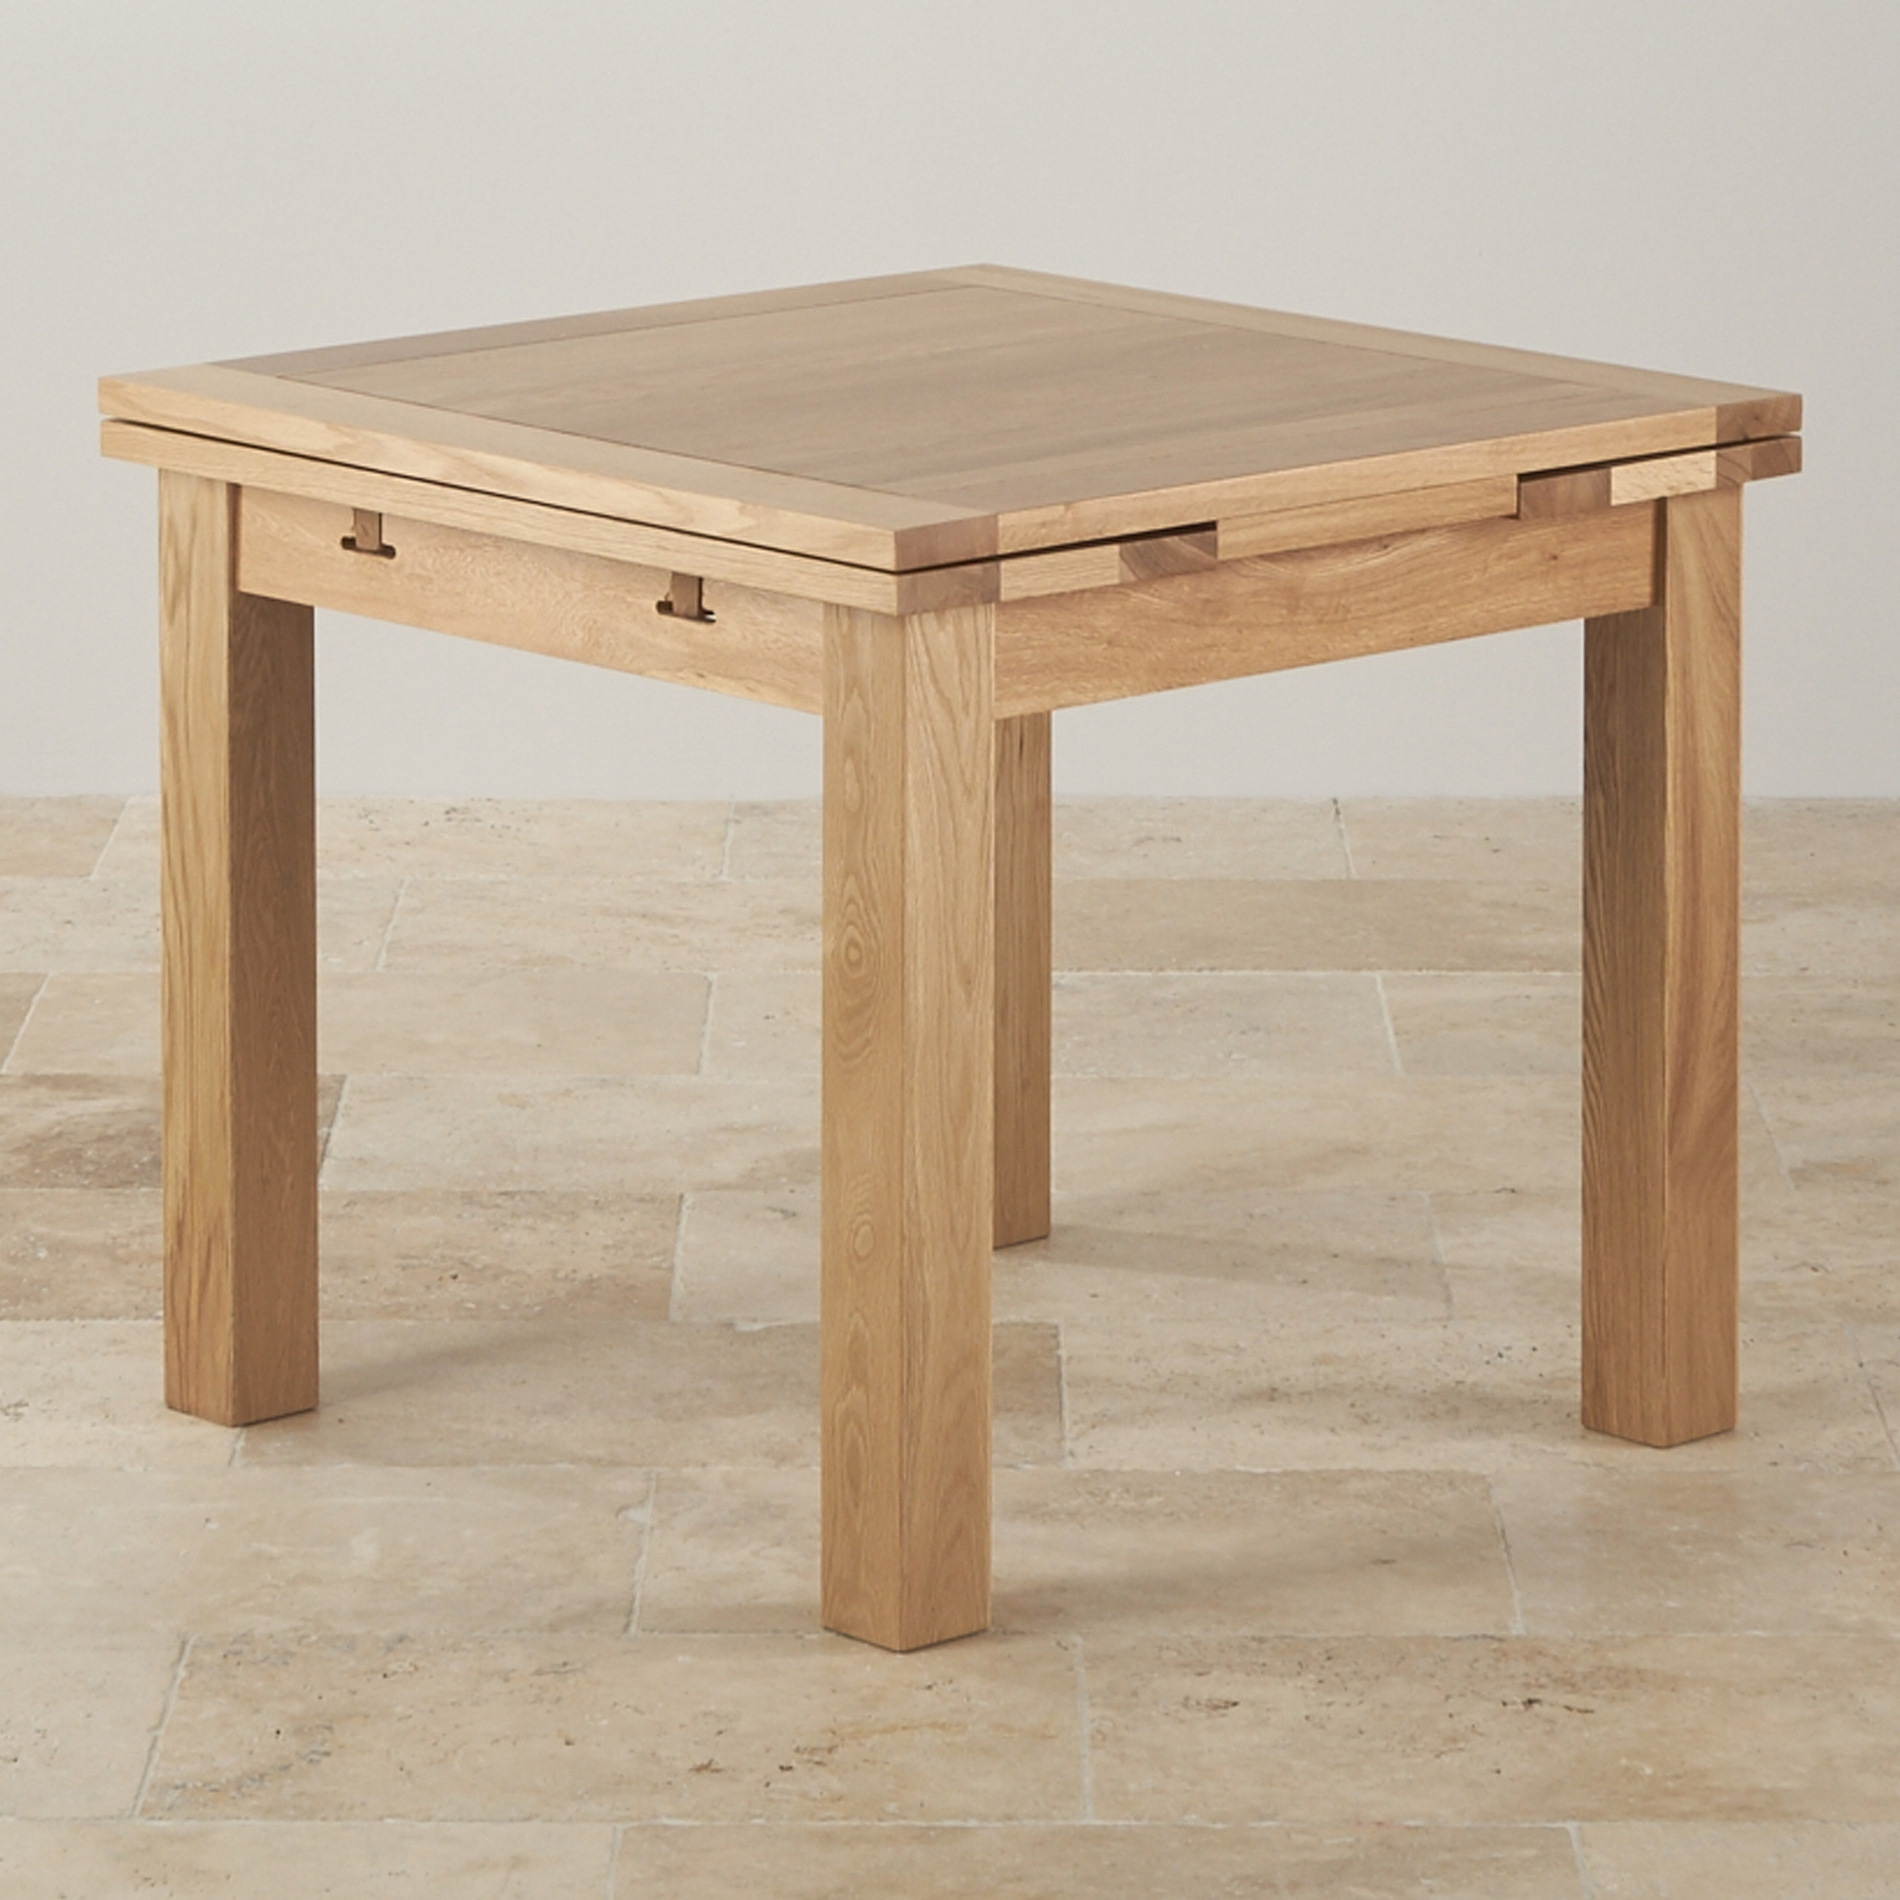 Widely Used Fanciful Small Extendable Dining Table 55 Most Splendid For 2 Glass In Circular Extending Dining Tables And Chairs (View 21 of 25)